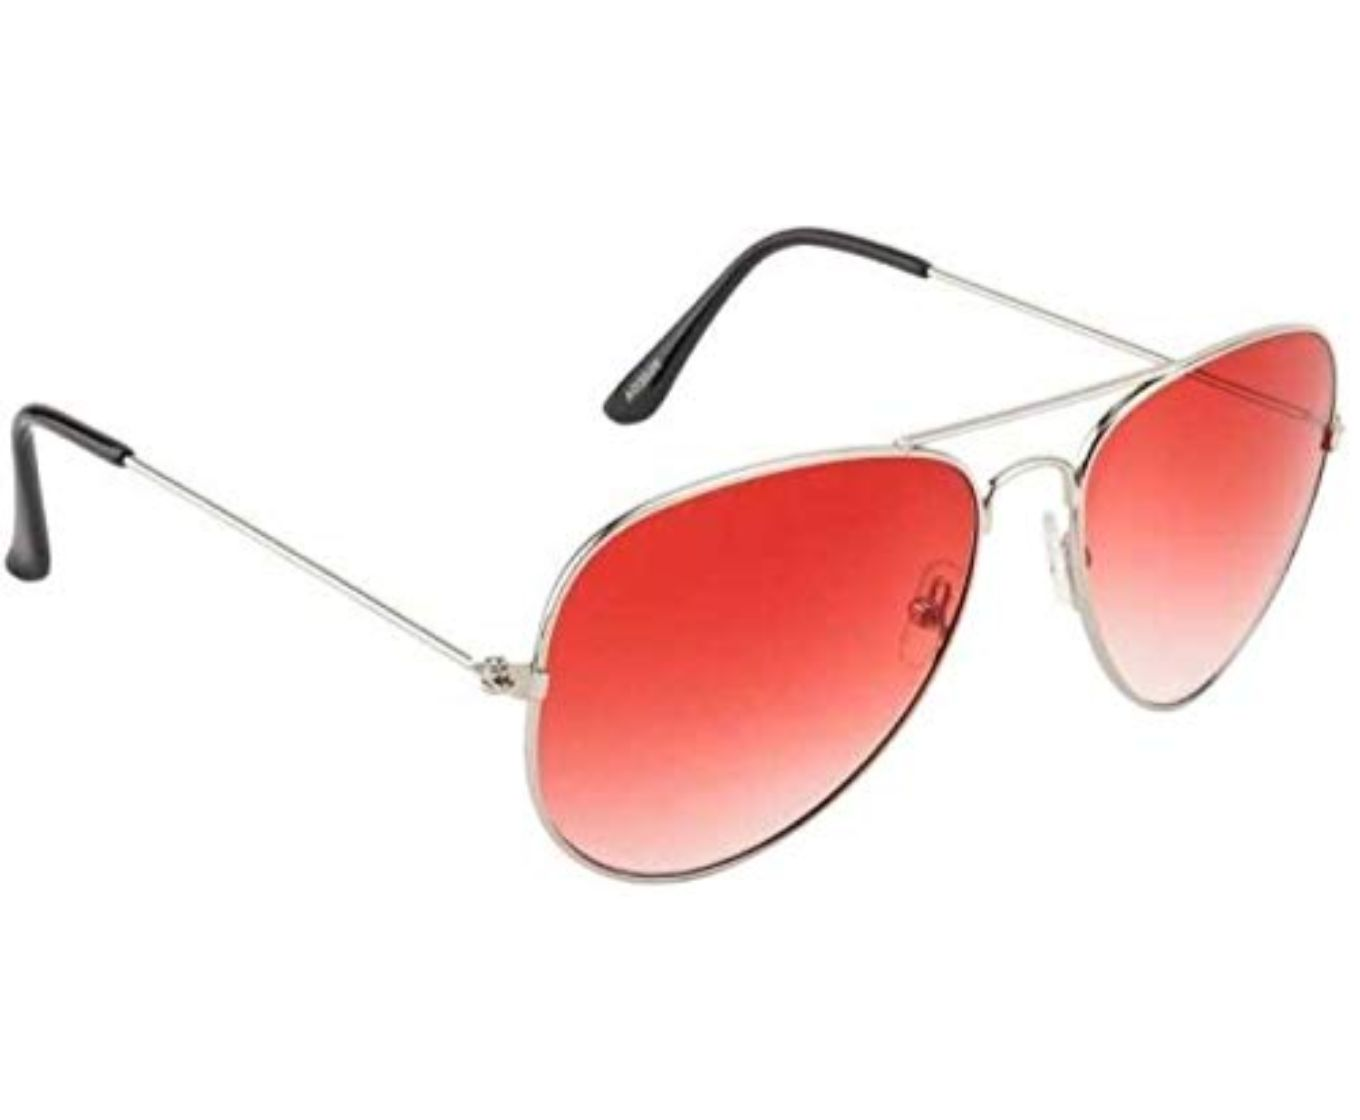 ETRG Unisex Premium  Aviators Red Metal Sunglasses (Pack of 2)